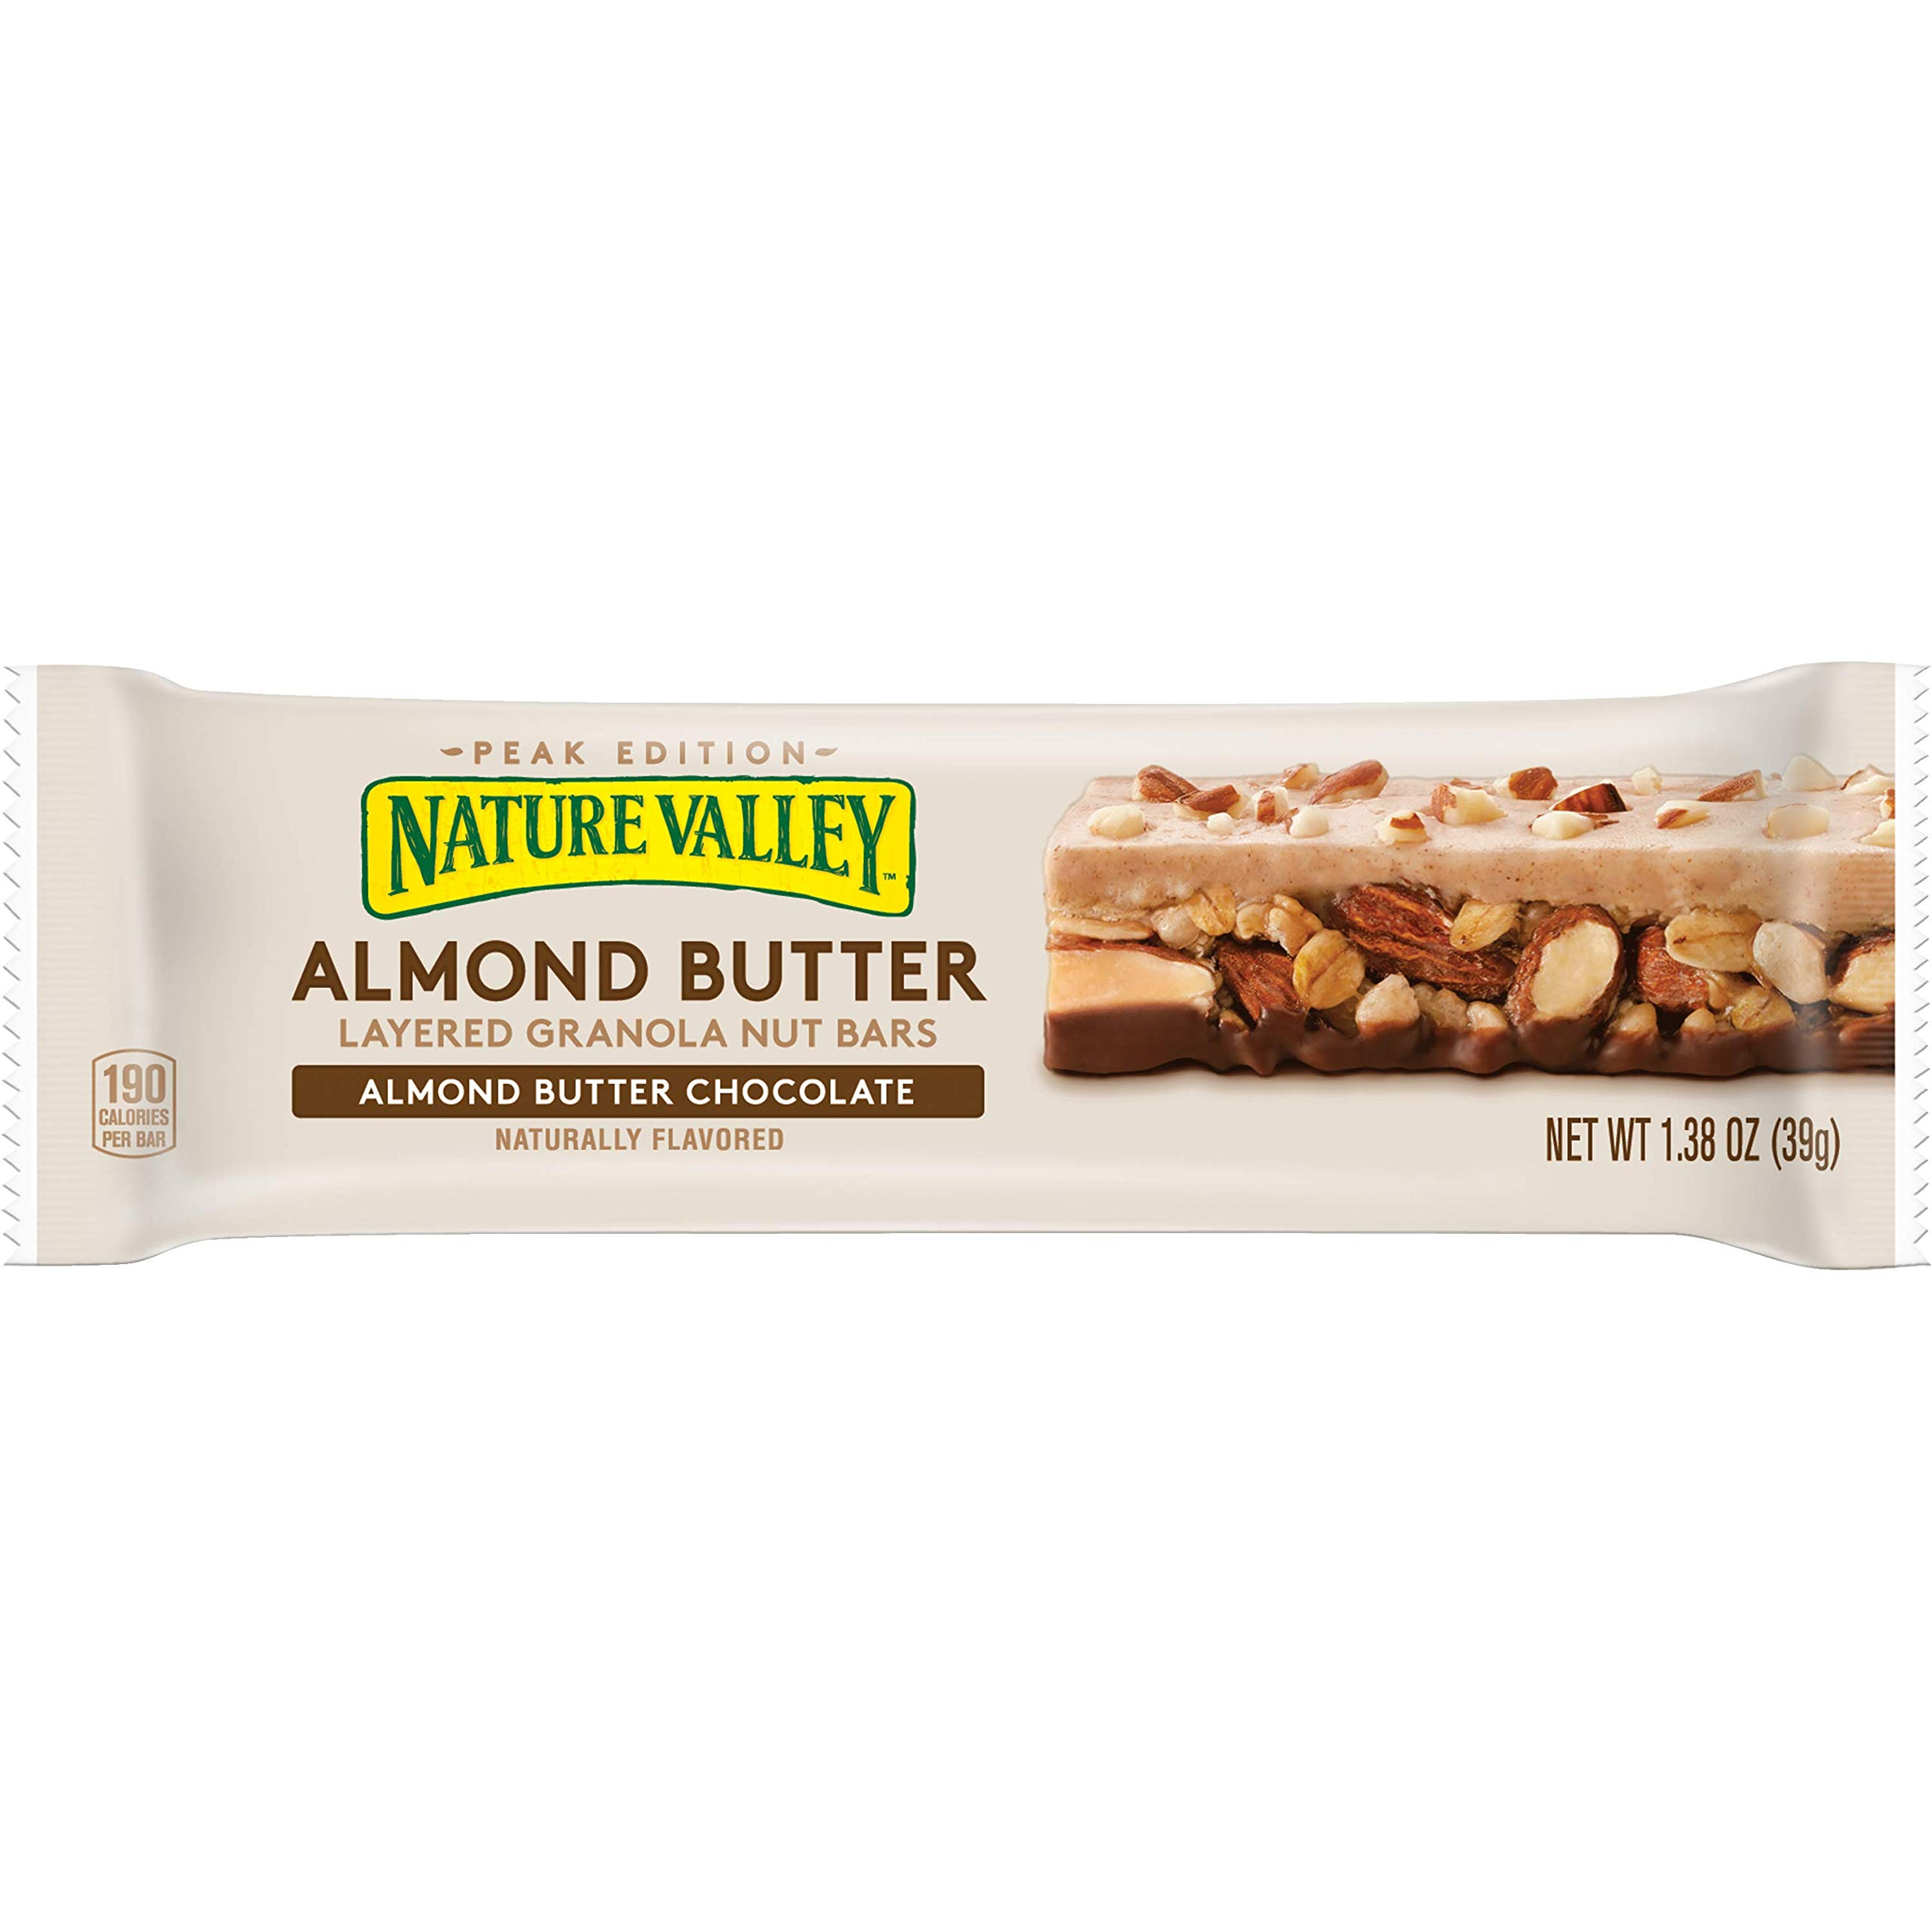 Nature Valley Three Layered Bar Almond Butter Chocolate, 11 Pound (Pack of 120)